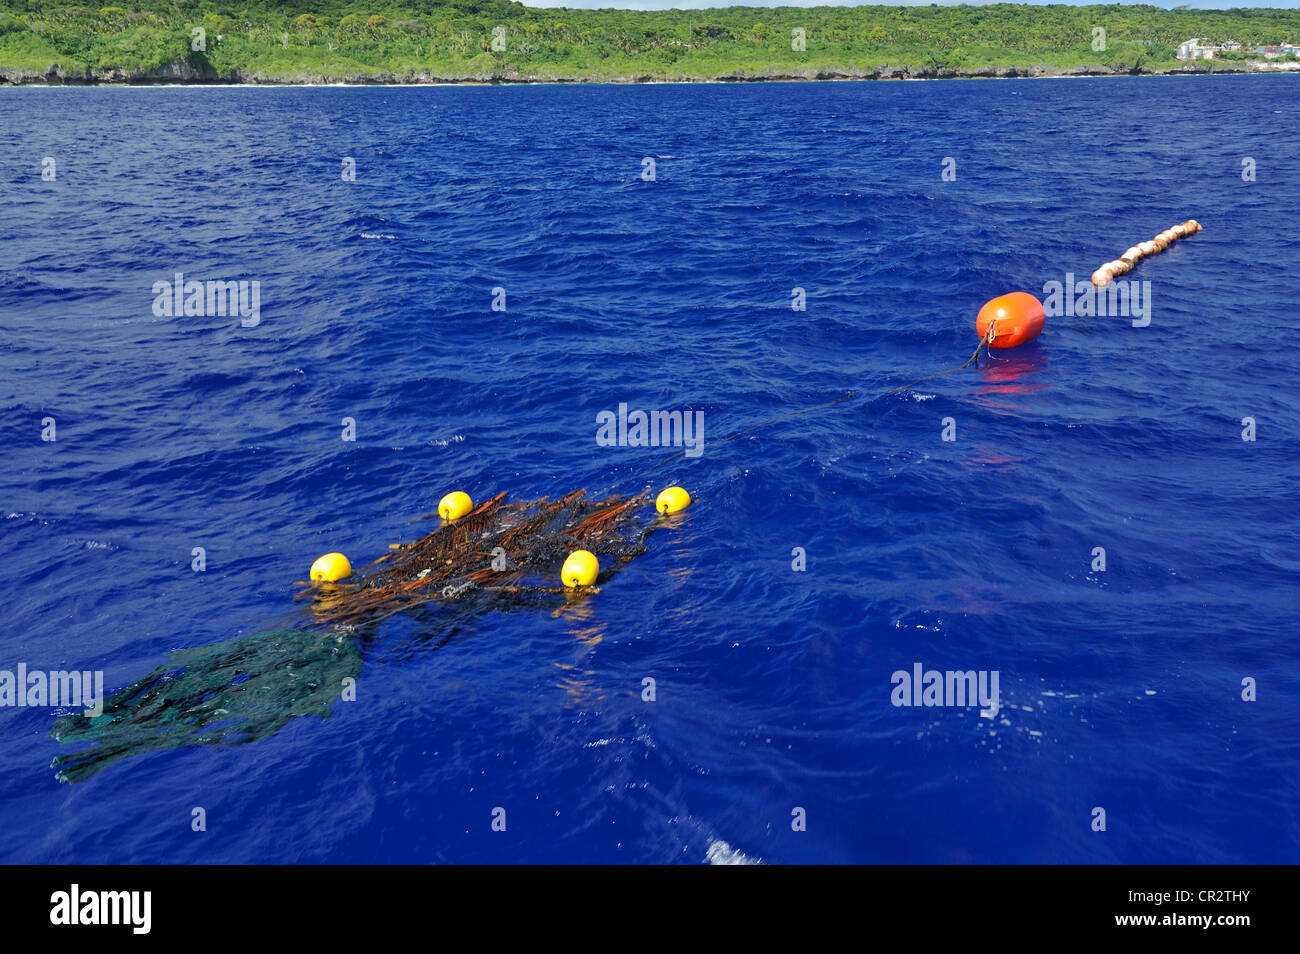 FAD, fish aggregating device, in water just north of Alofi, Nuie, South Pacific - Stock Image